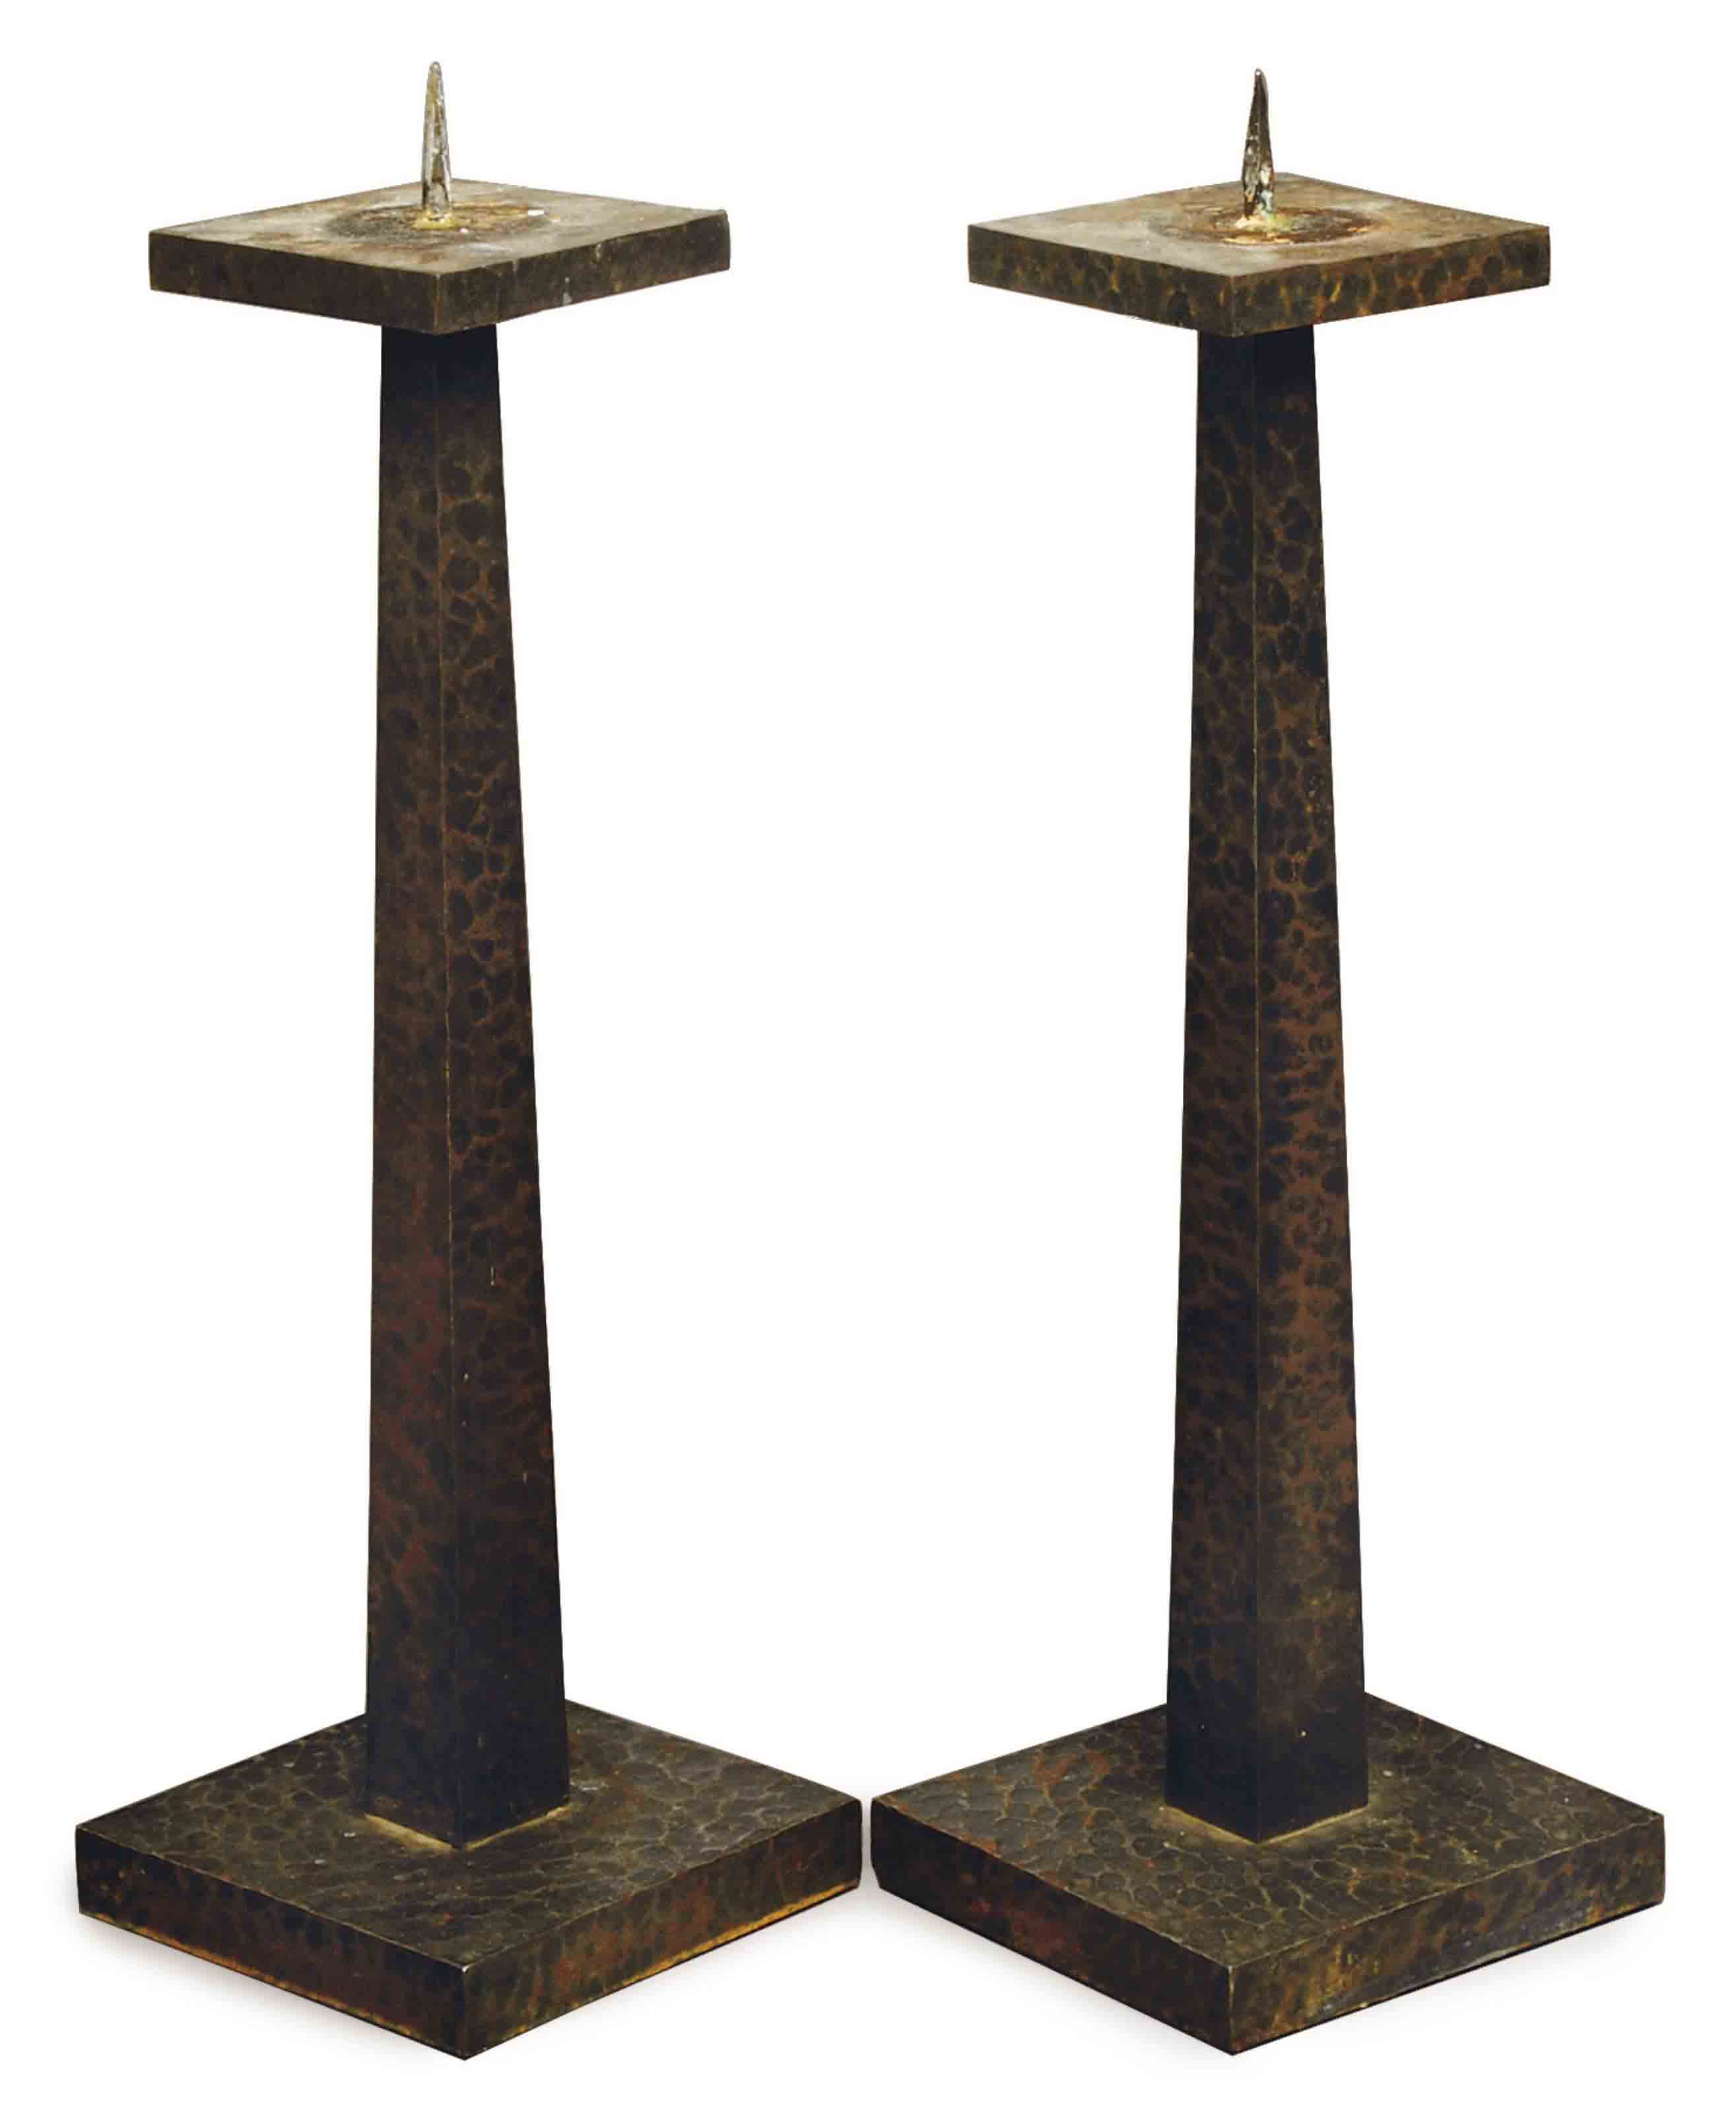 A PAIR OF ARTS AND CRAFTS HAMMERED-STEEL CANDLESTICKS,